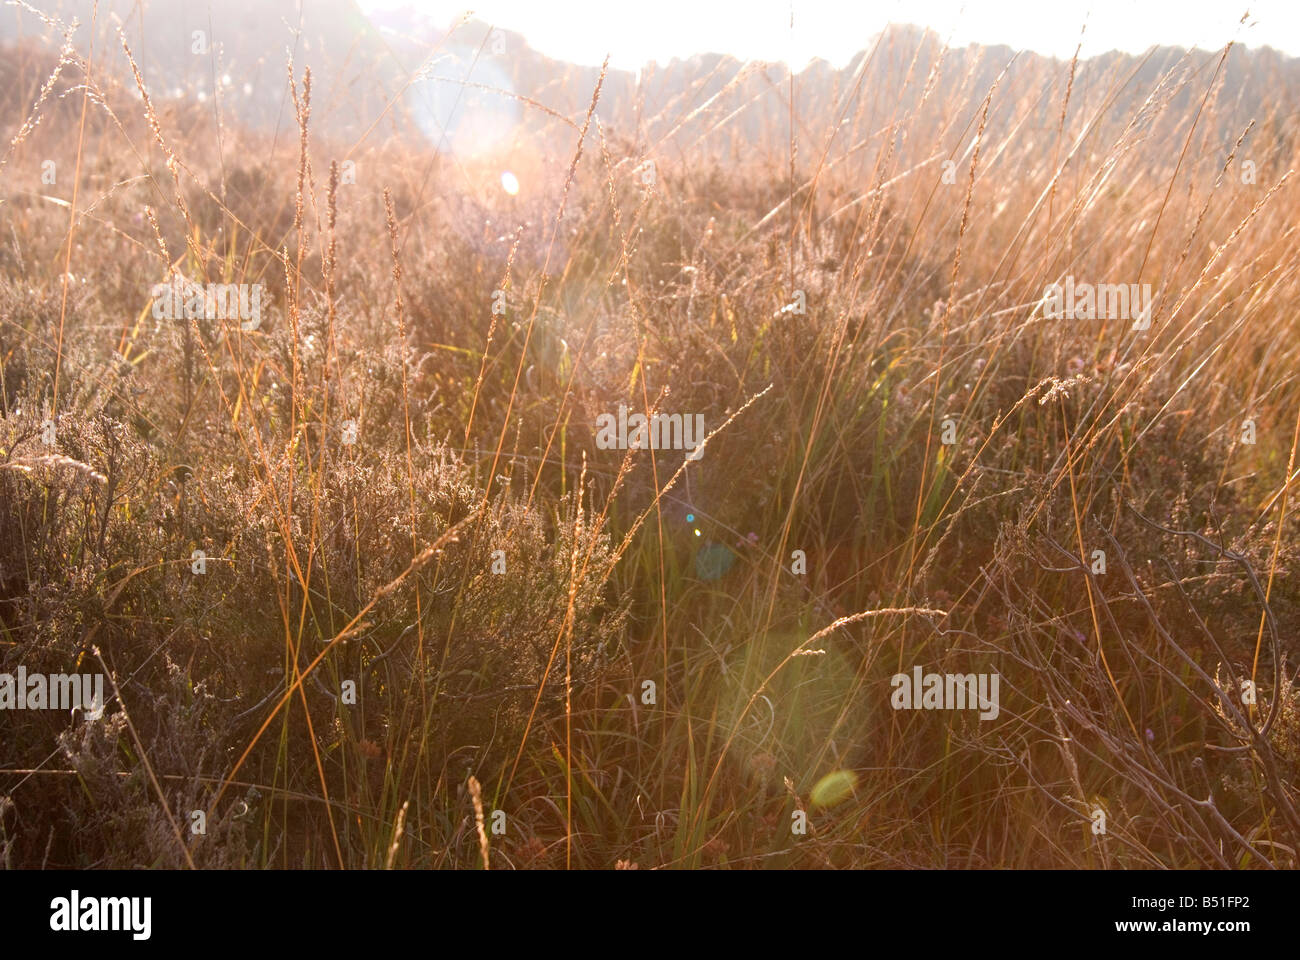 An image looking through long brown grass with the sun behind making the grass seem golden. The sun hits the lens - Stock Image